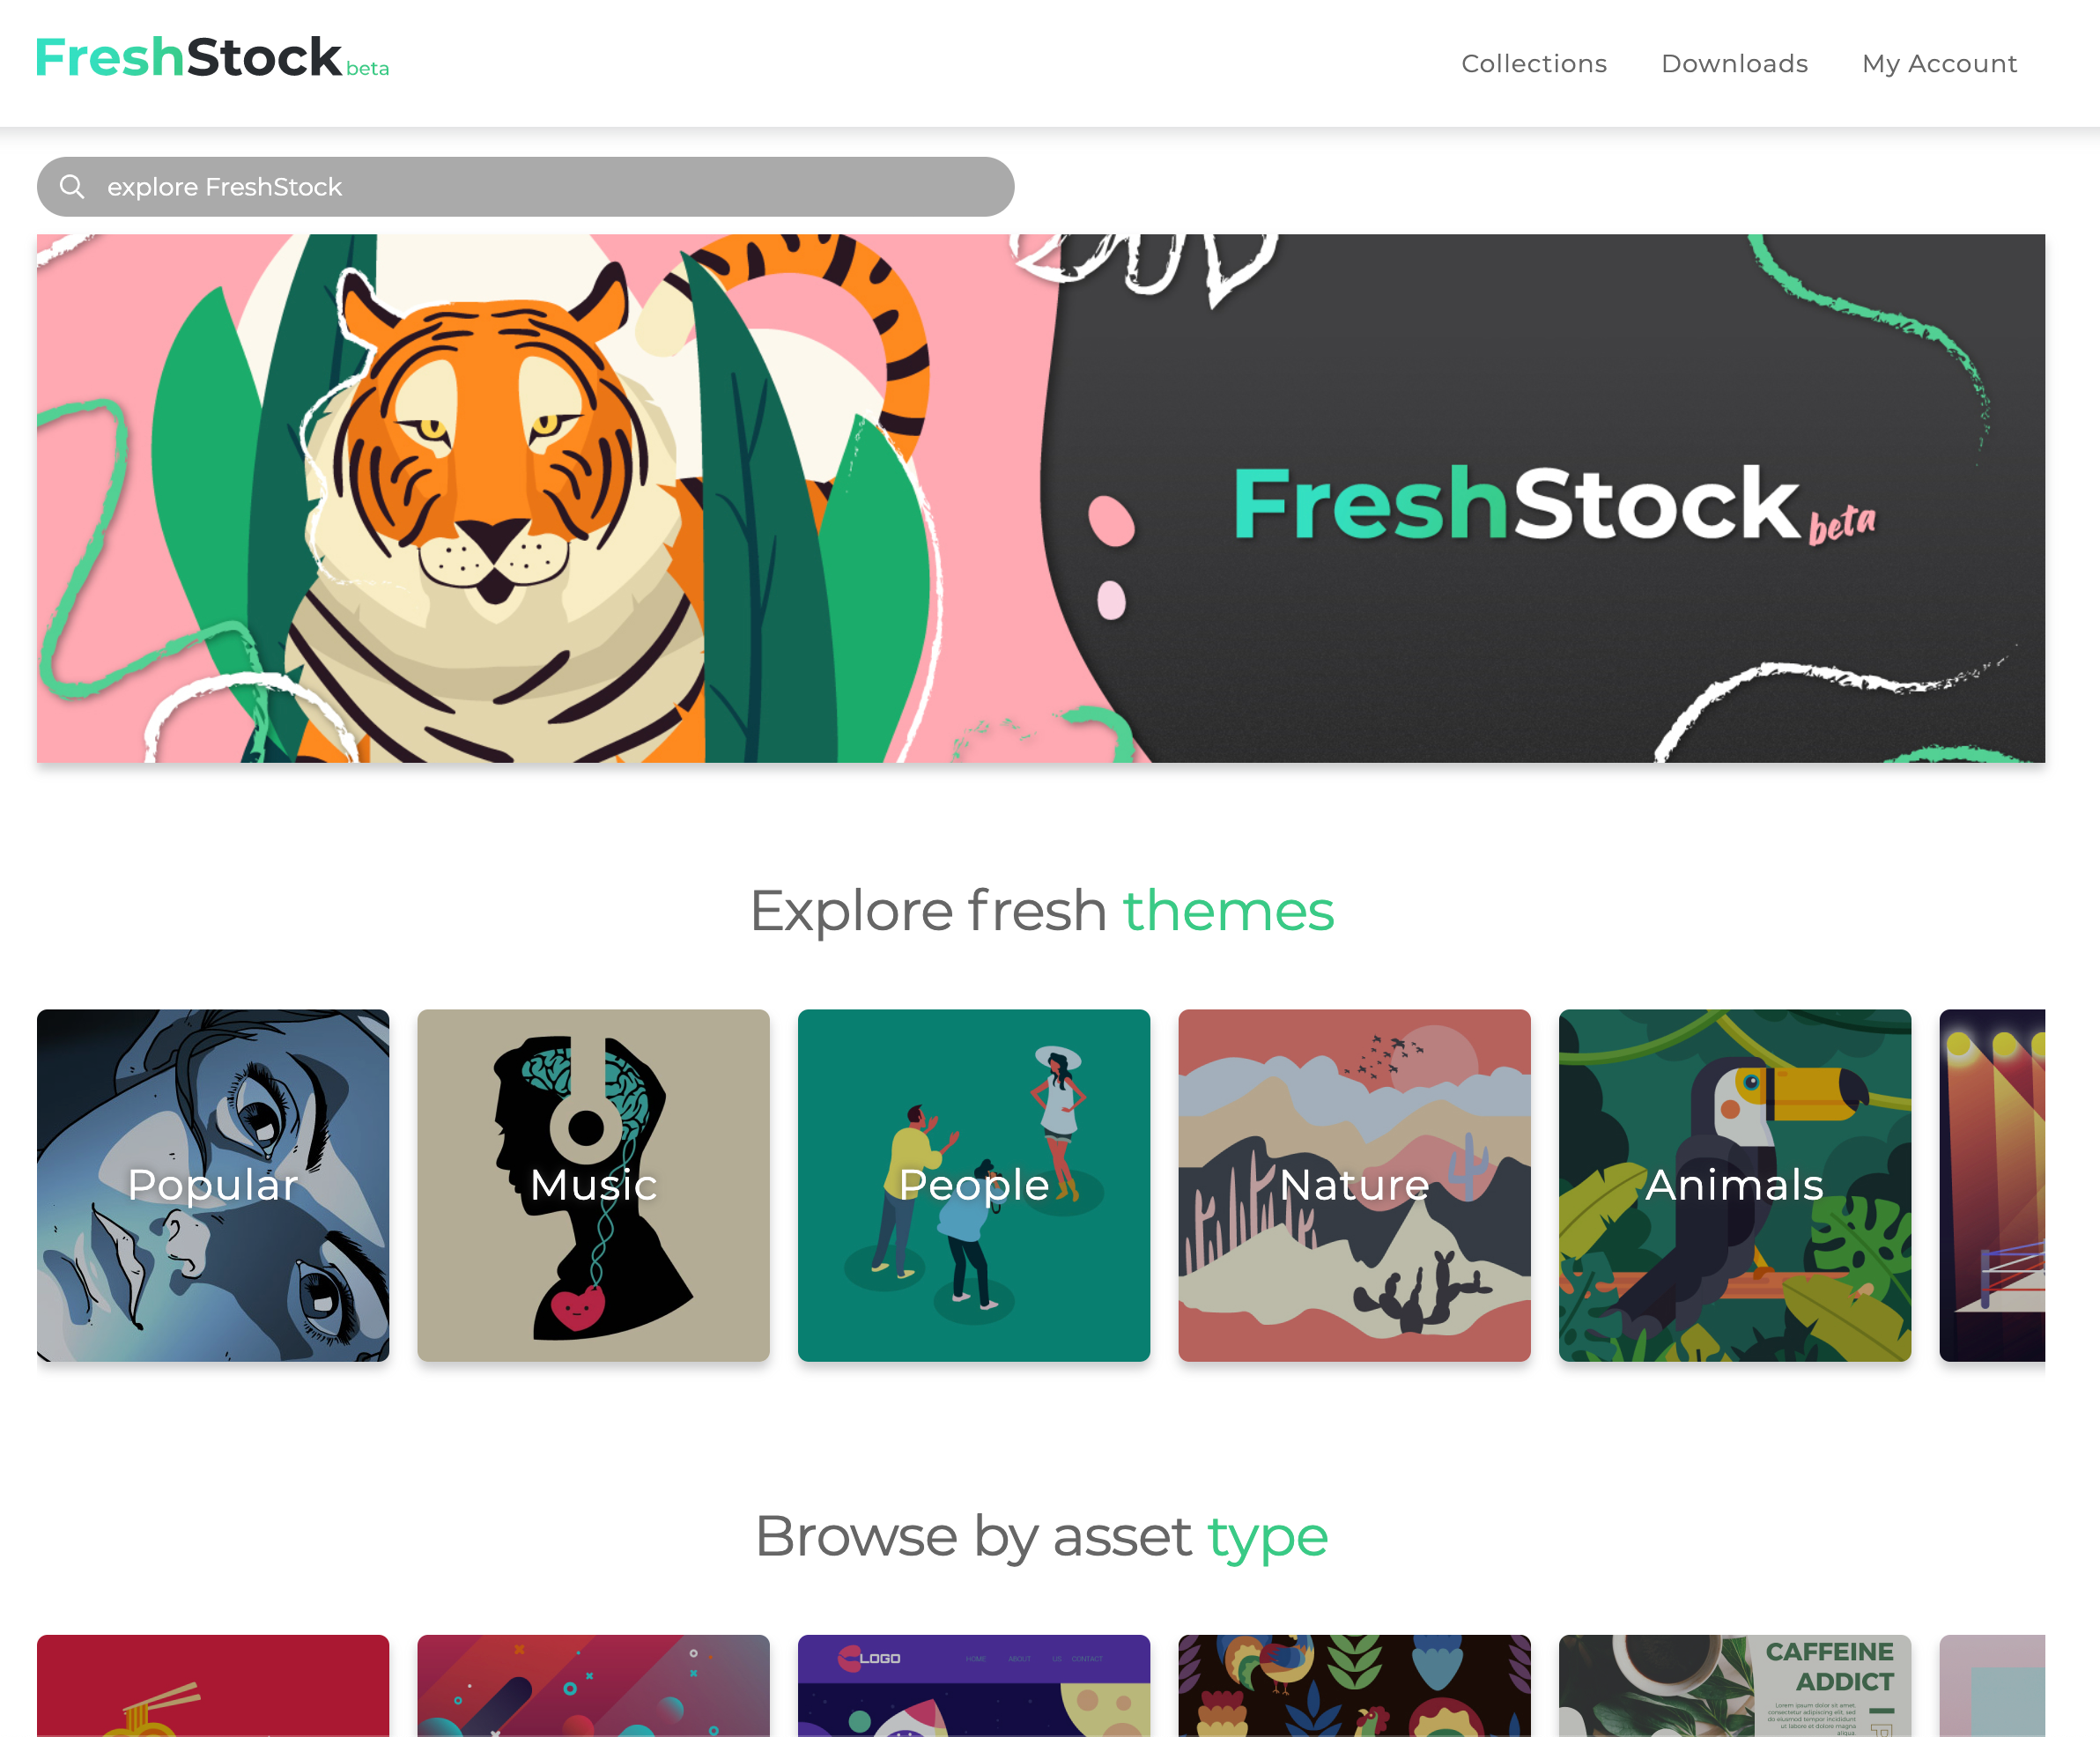 Fresh Stock Home Page